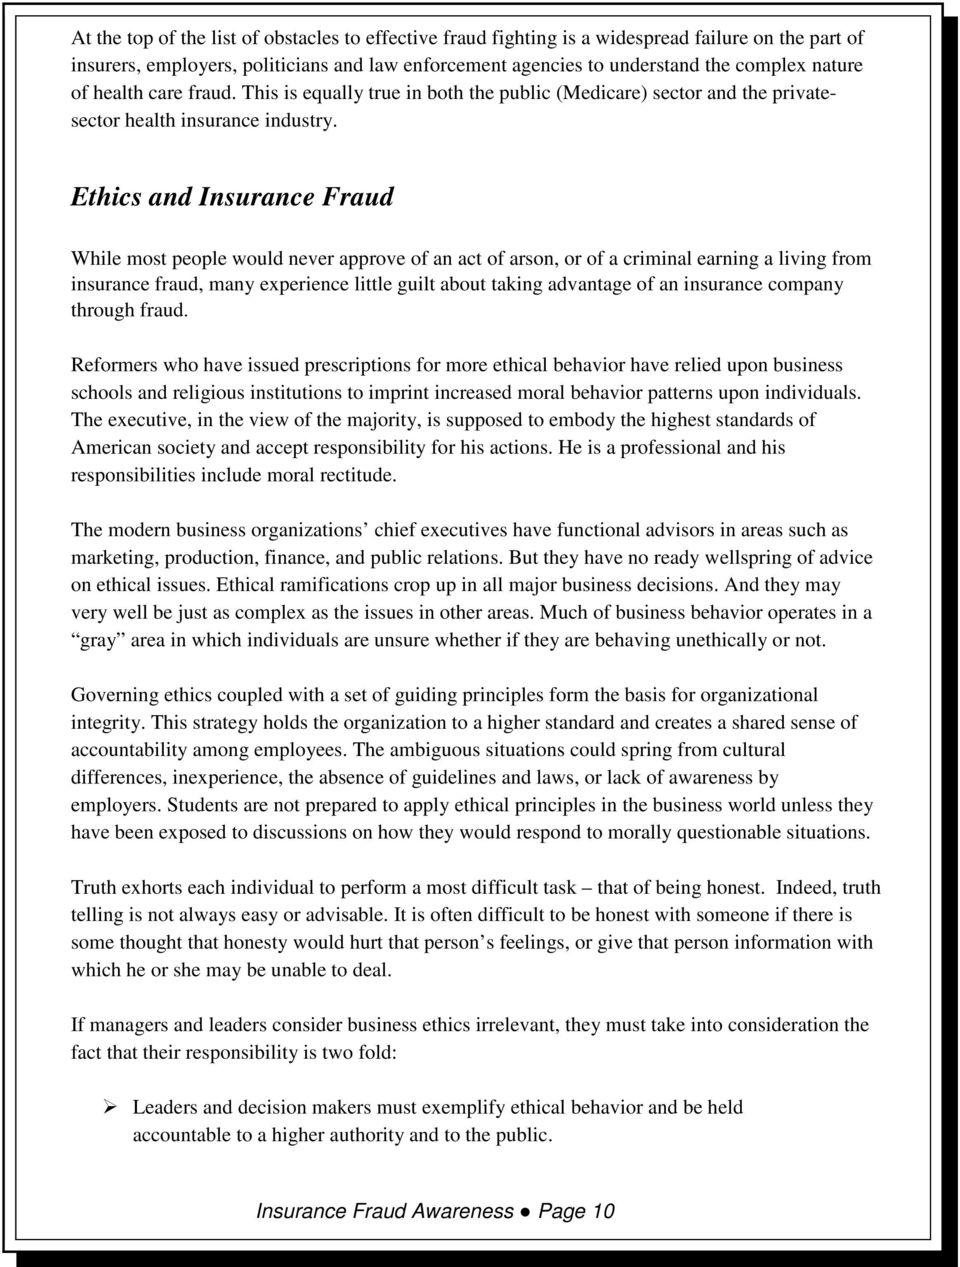 Ethics and Insurance Fraud While most people would never approve of an act of arson, or of a criminal earning a living from insurance fraud, many experience little guilt about taking advantage of an